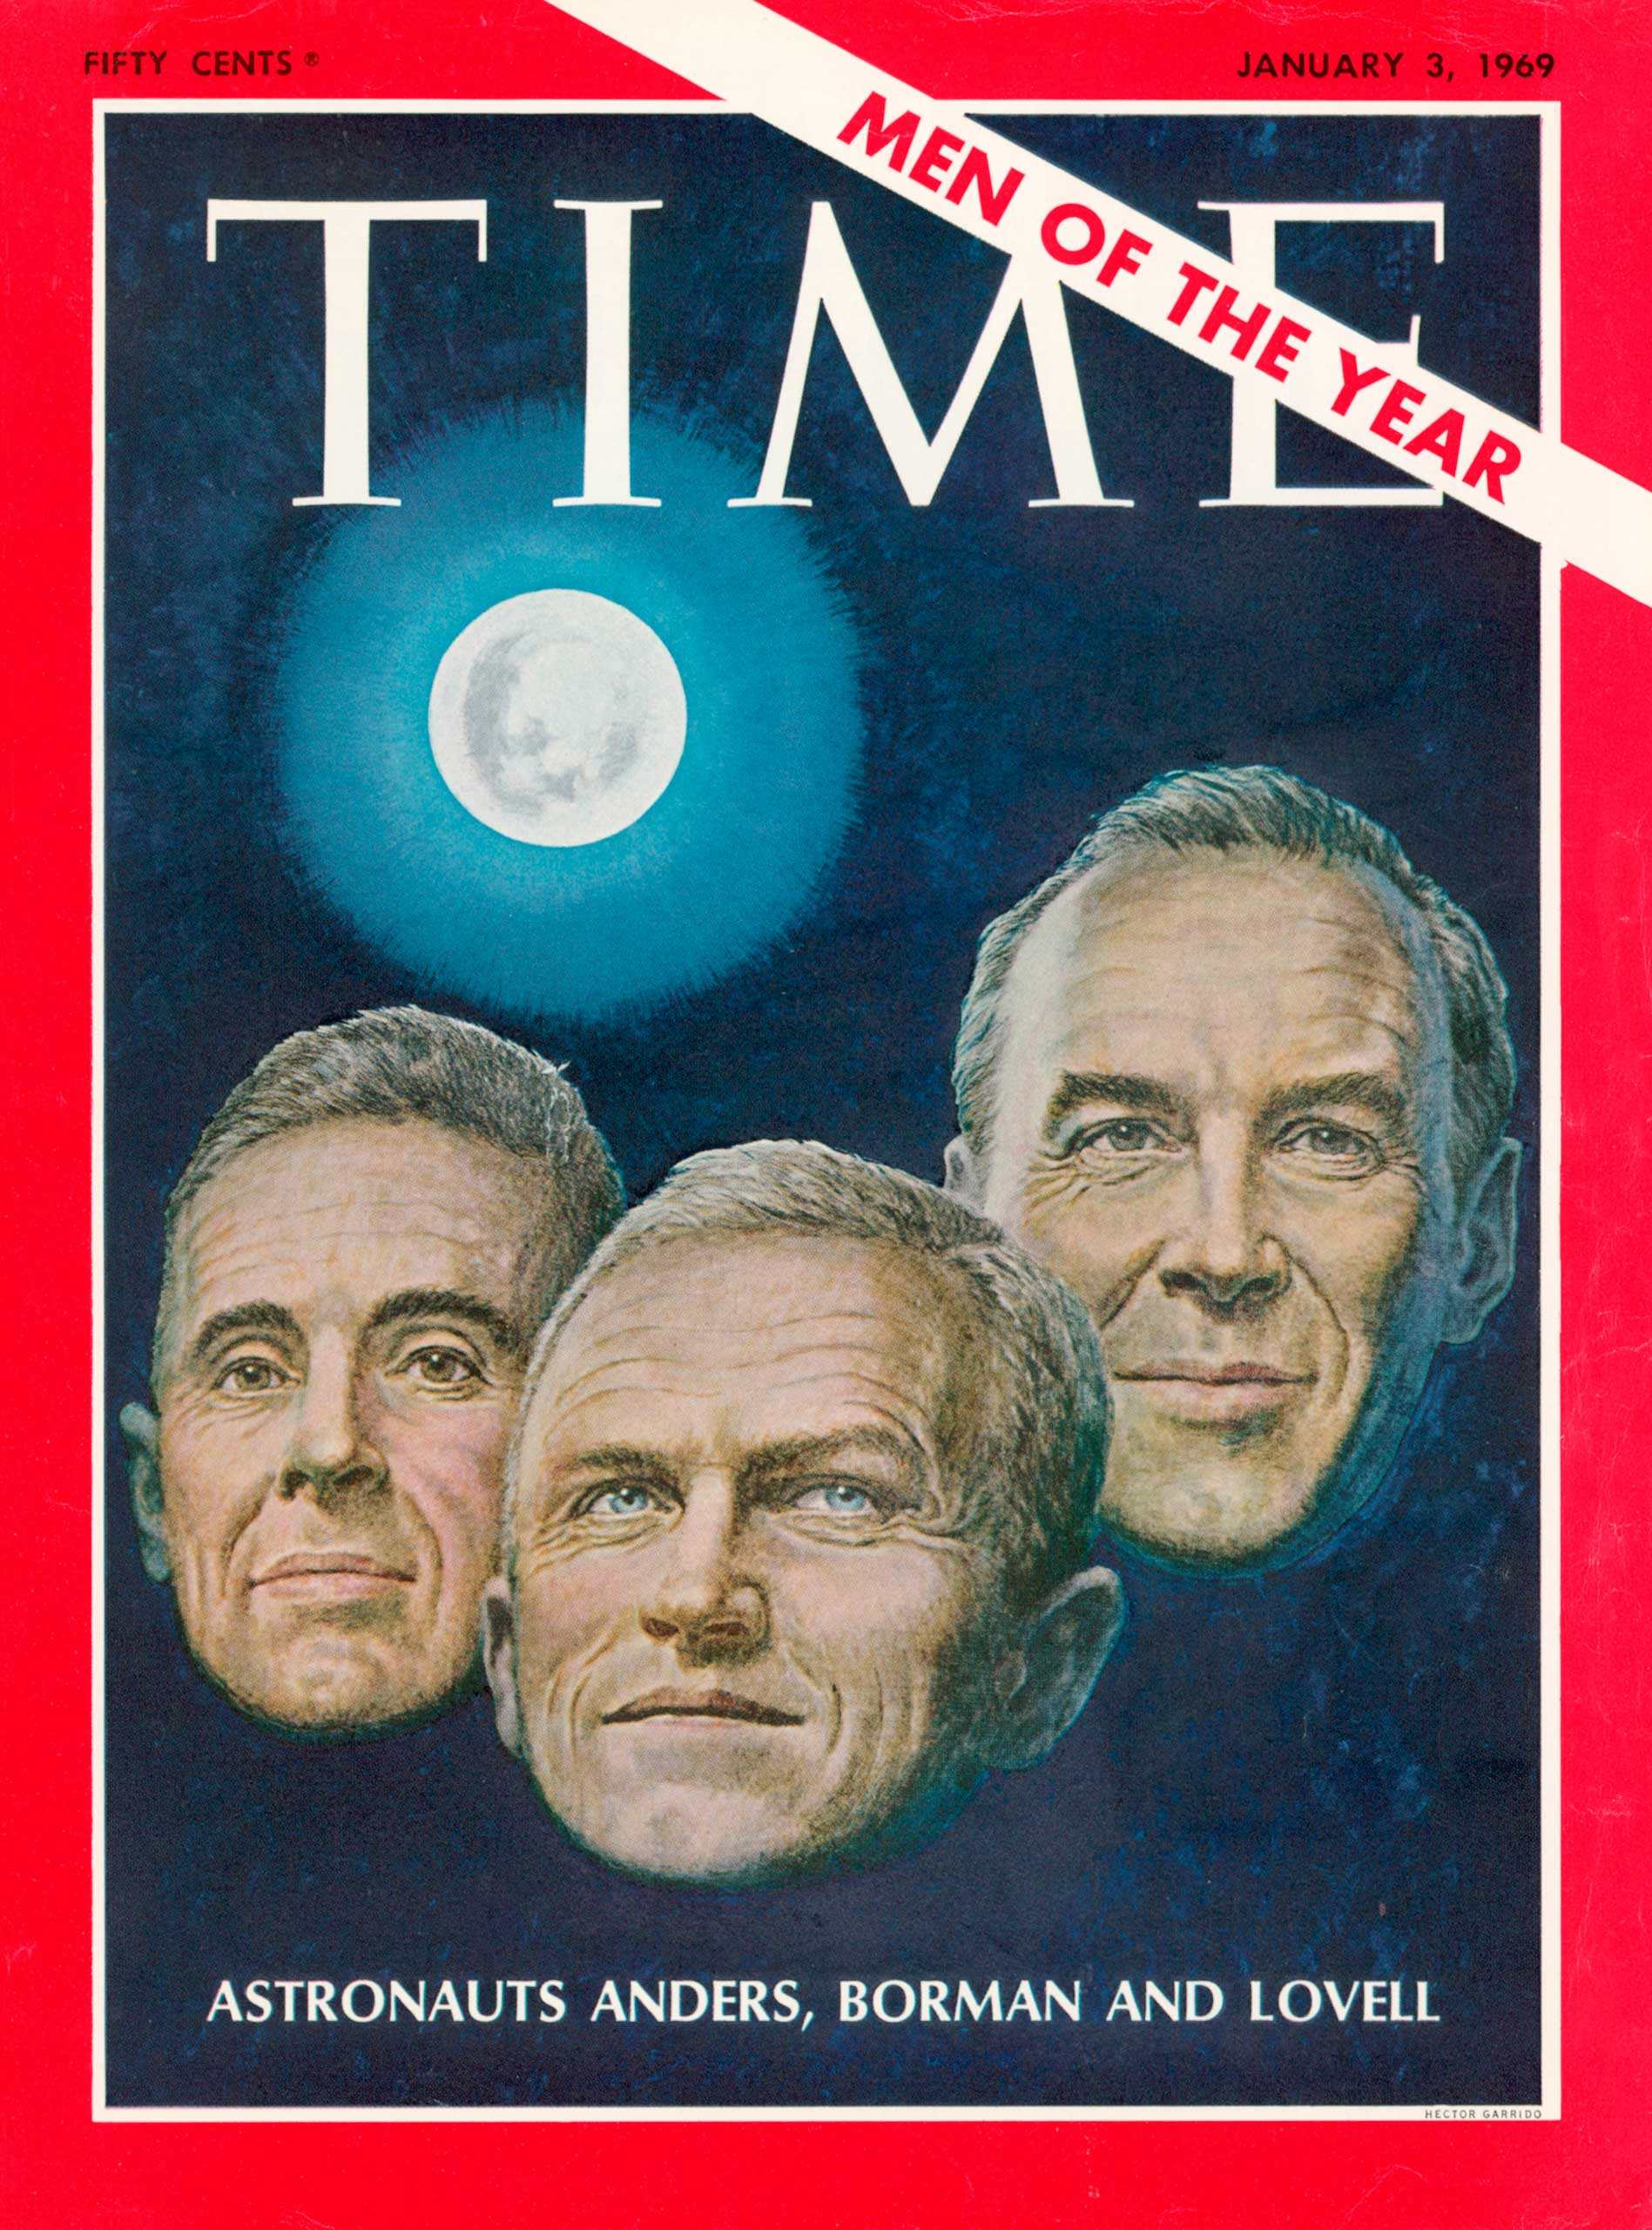 1968: The Apollo 8 Astronauts